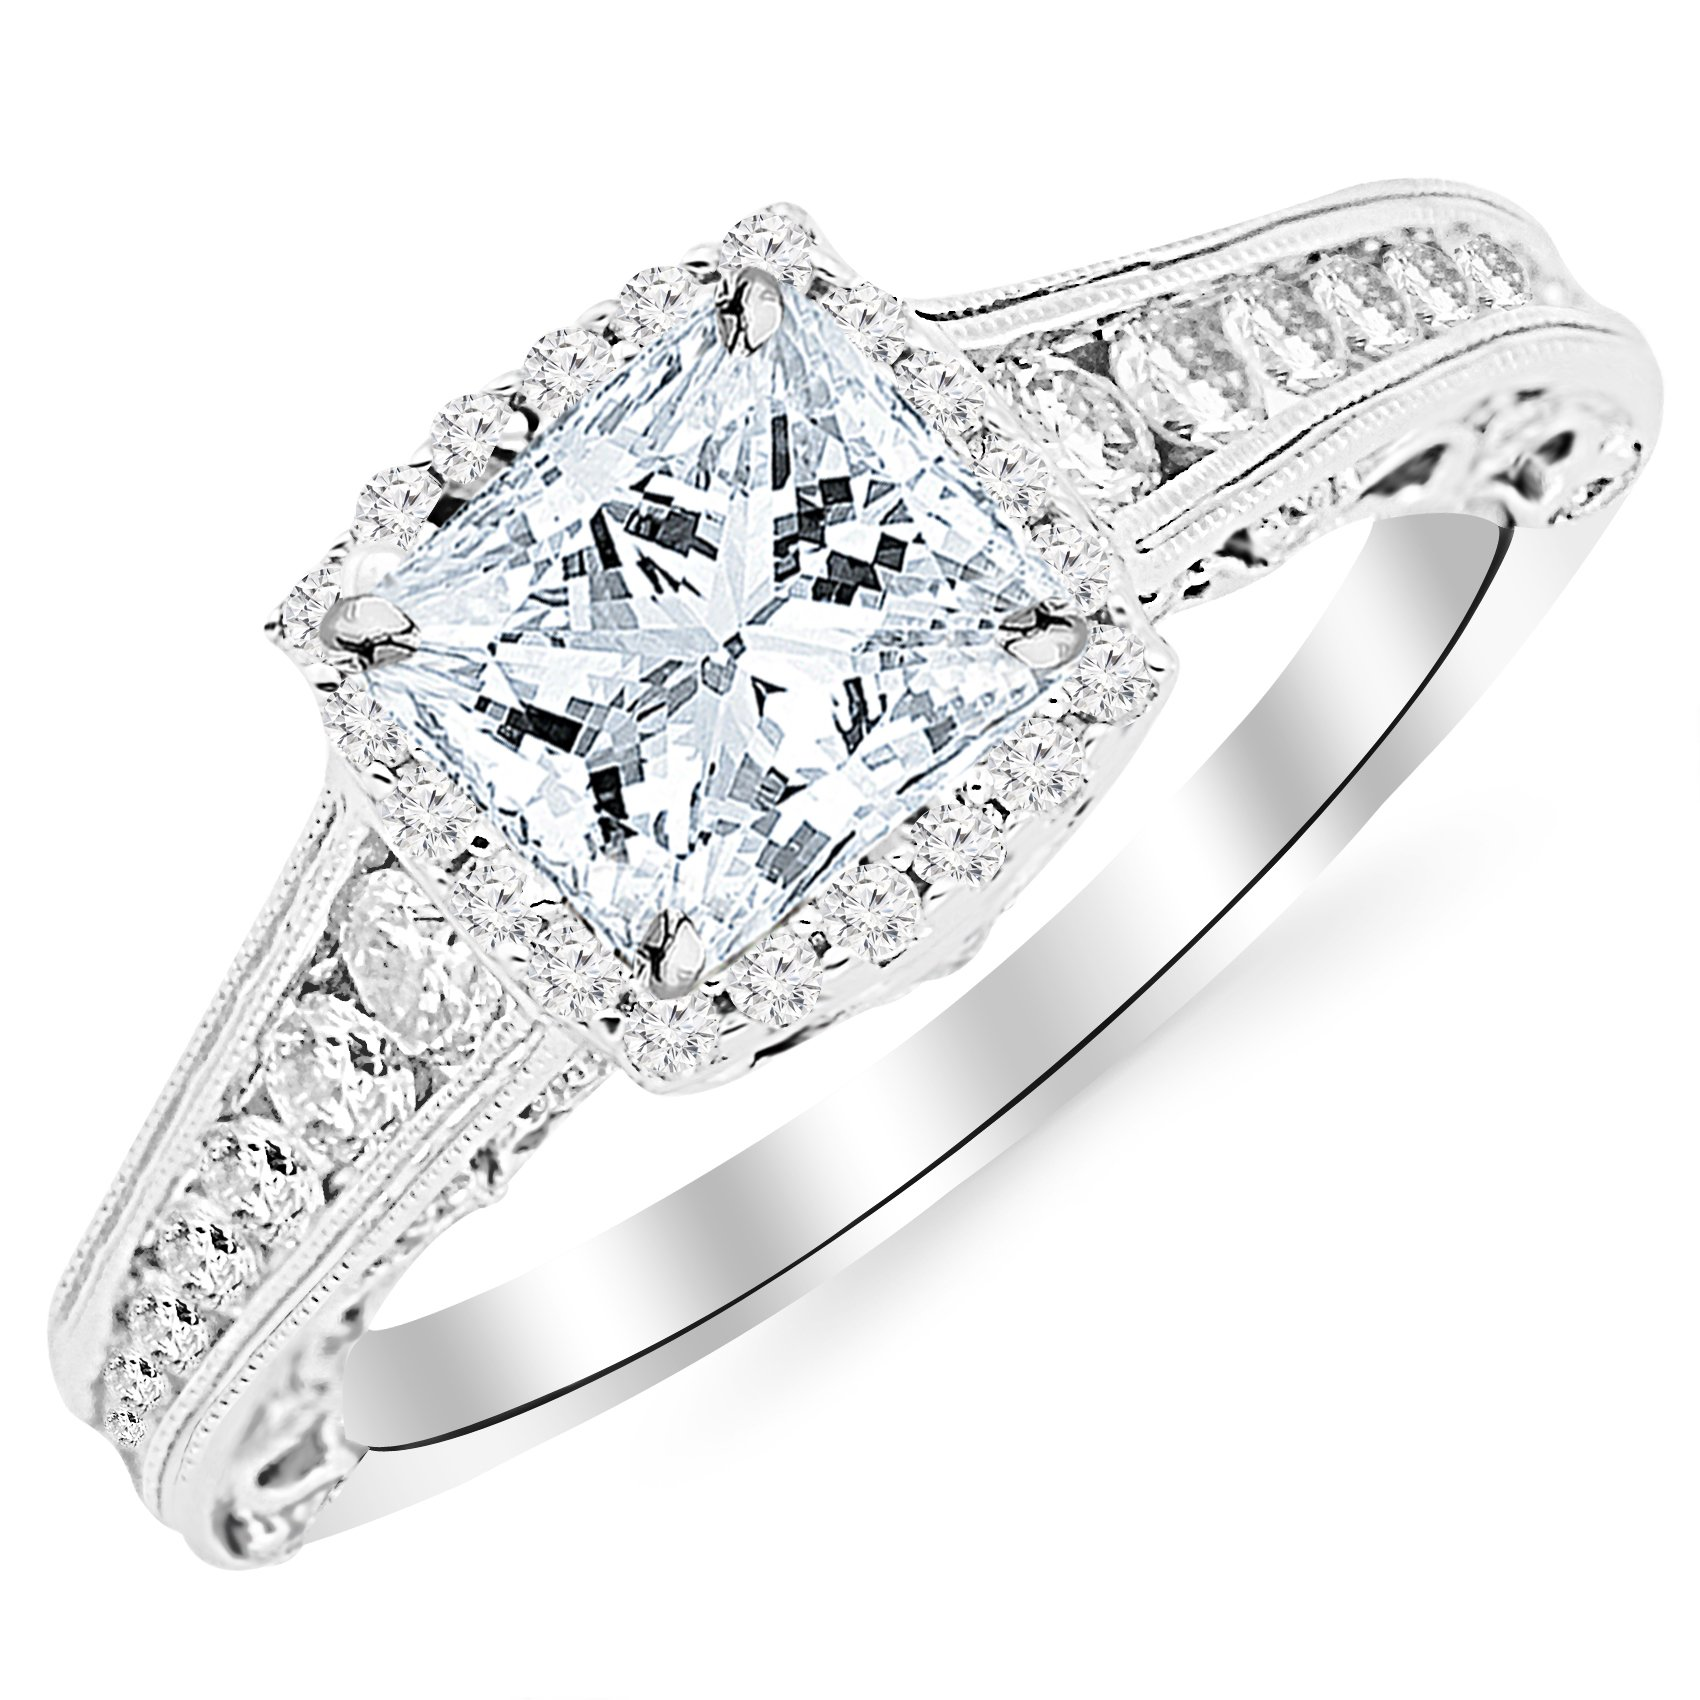 1.75 Carat 14K White Gold Vintage Halo Style Channel Set Round Brilliant Diamond Engagement Ring Milgrain with a 1 Carat Moissanite Center